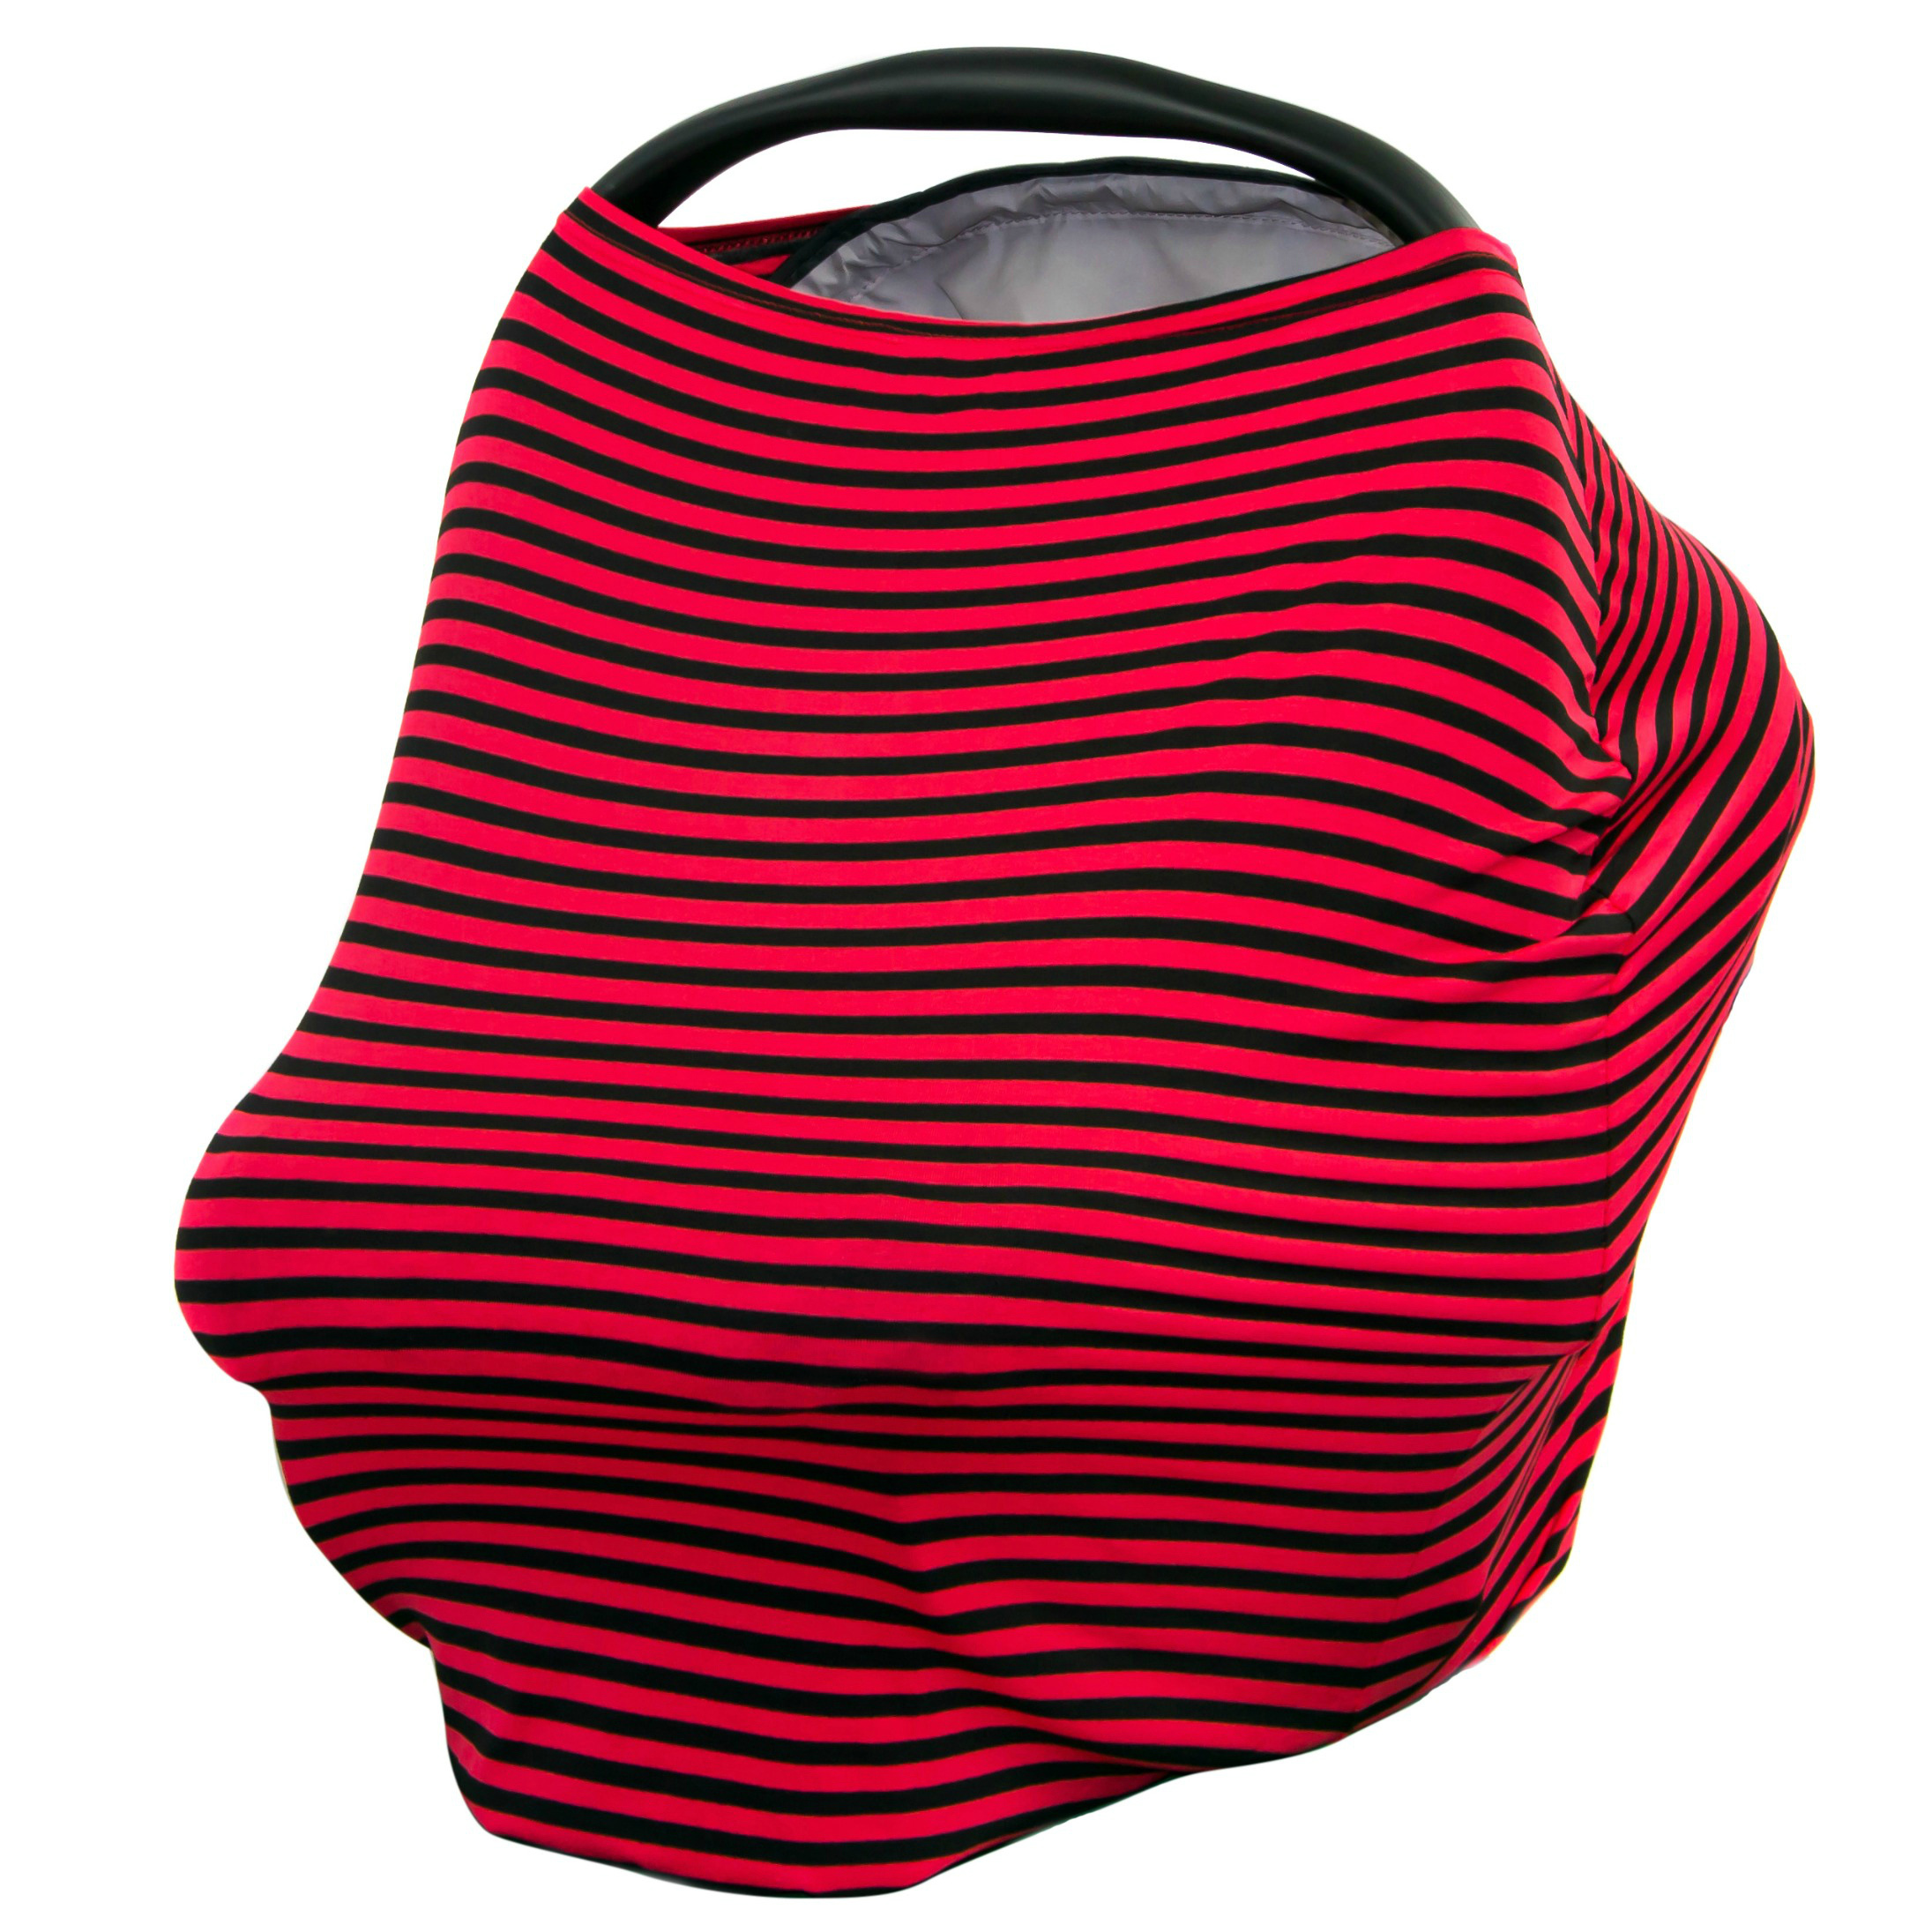 JLIKA Baby Car Seat Canopy Cover and Stretchy Nursing Cover - Red Black Stripe